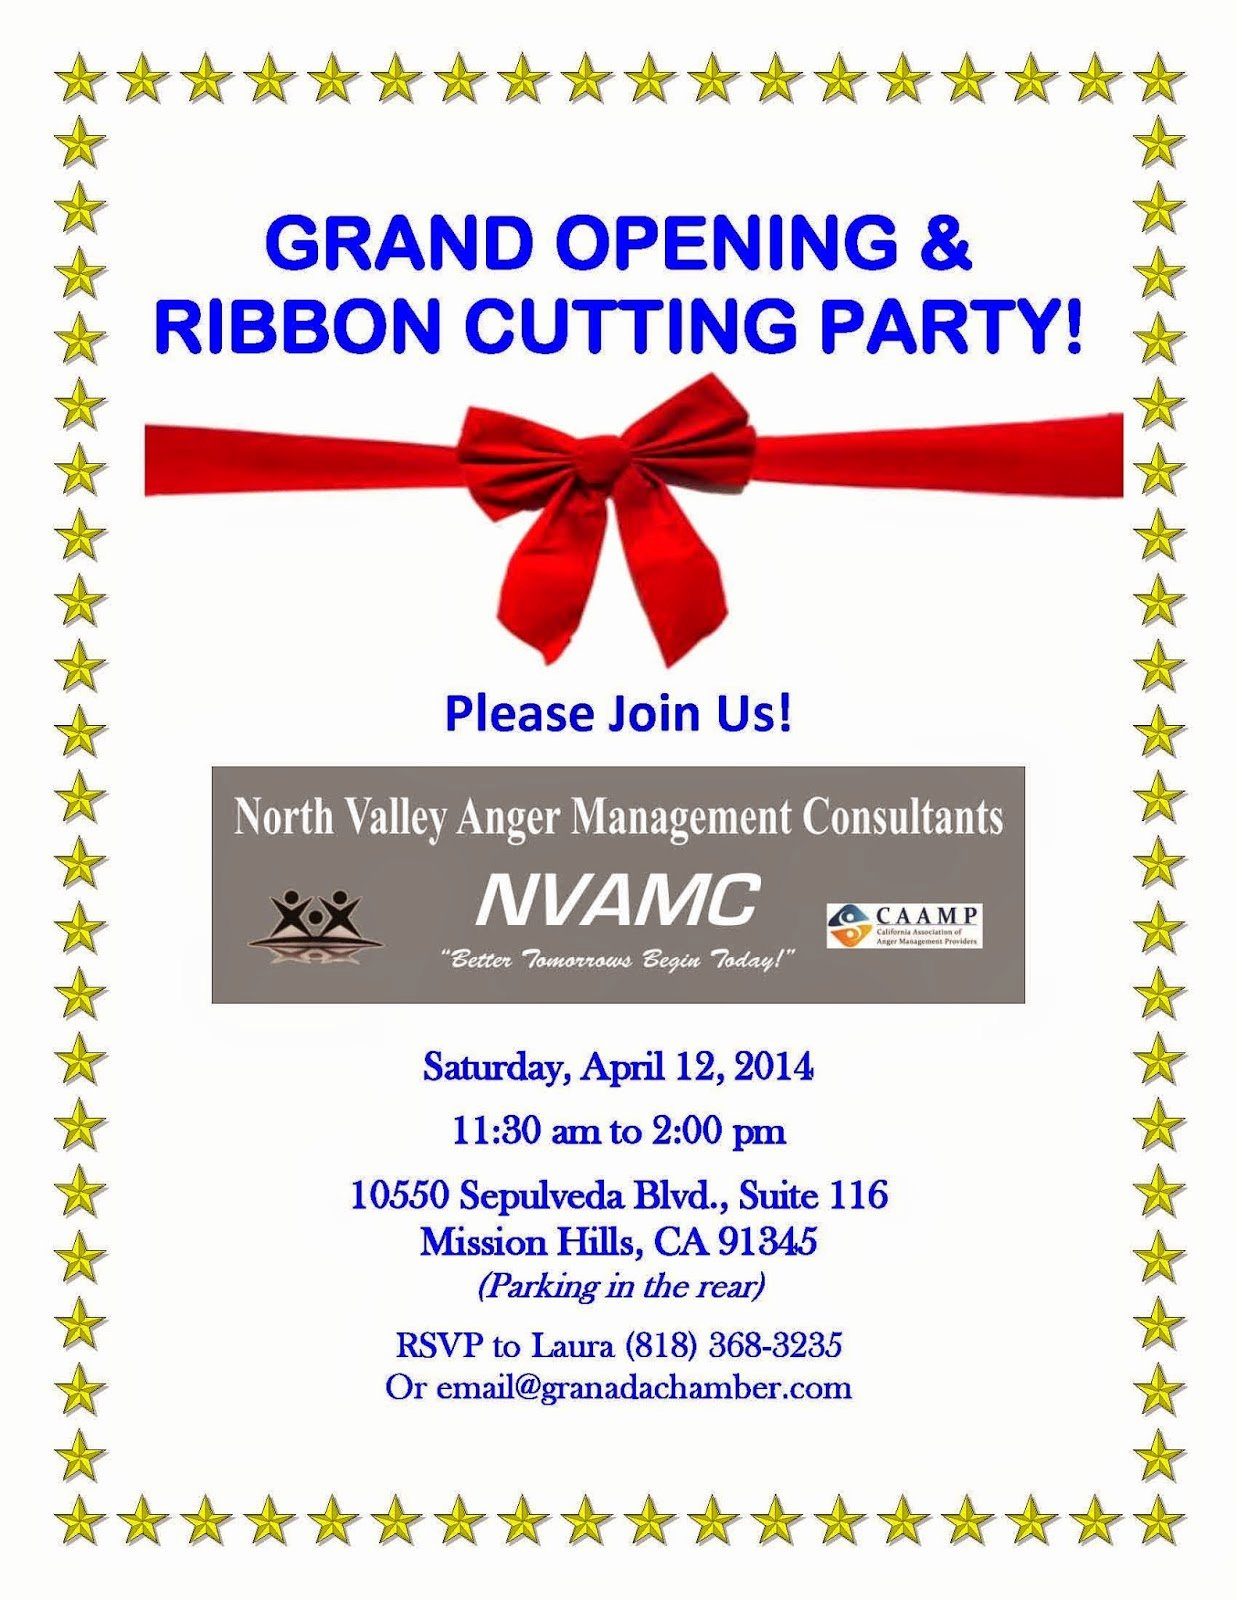 Grand Opening Invitation Template New Anger Management for Modern Life Grand Opening & Ribbon